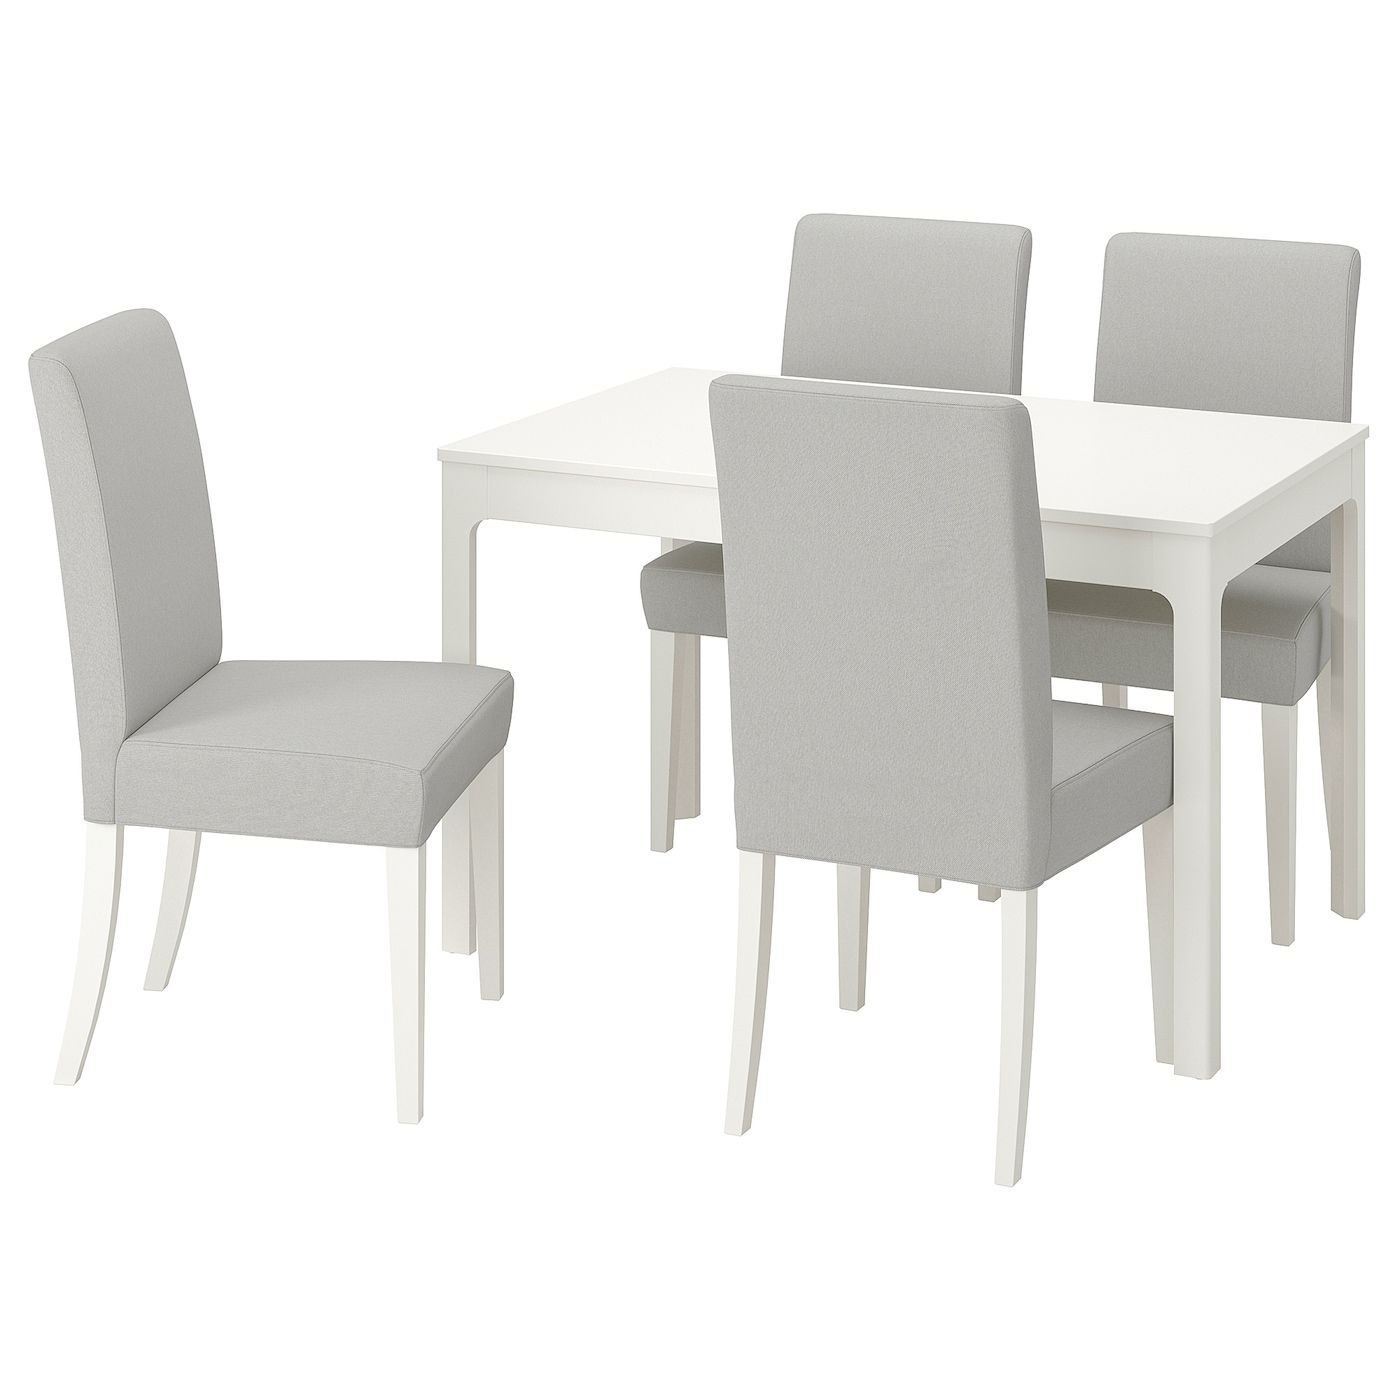 Ekedalen Henriksdal Table And 4 Chairs White Orrsta Light